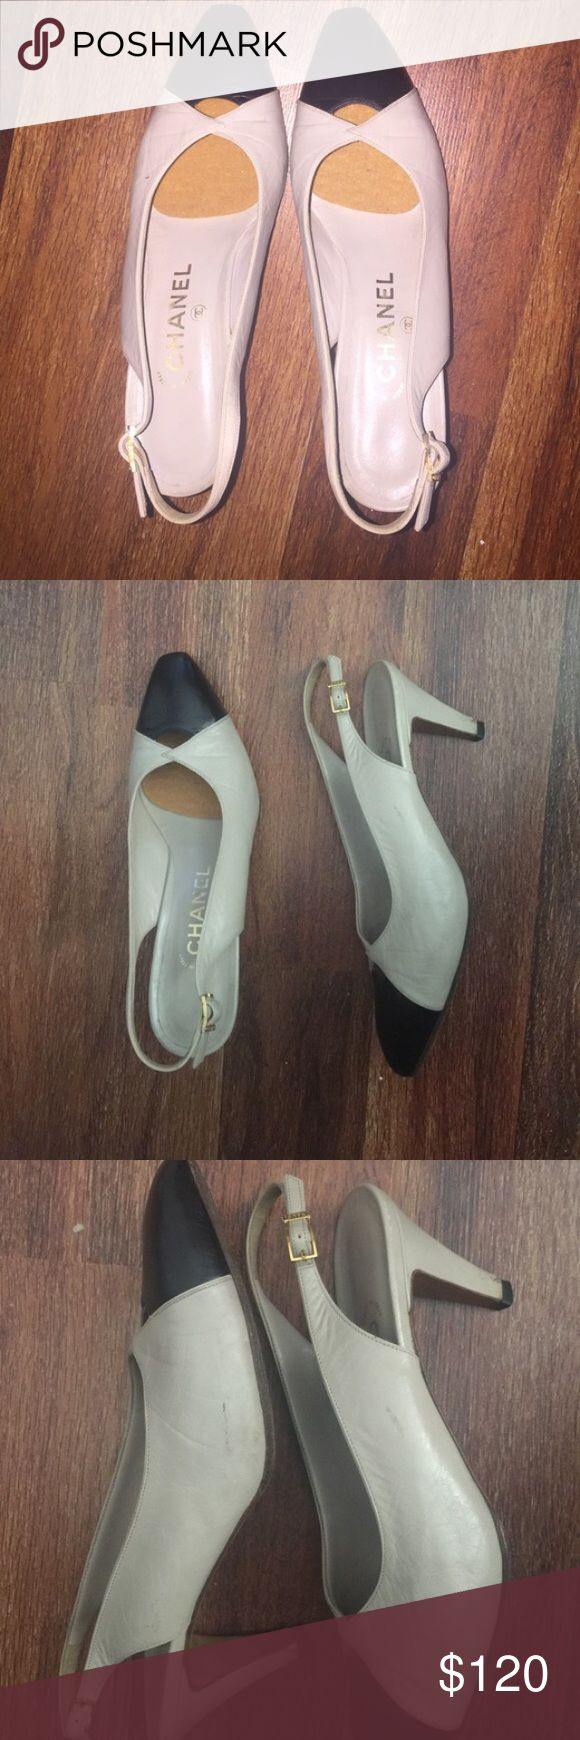 Chanel price firm Size 7 CHANEL Shoes